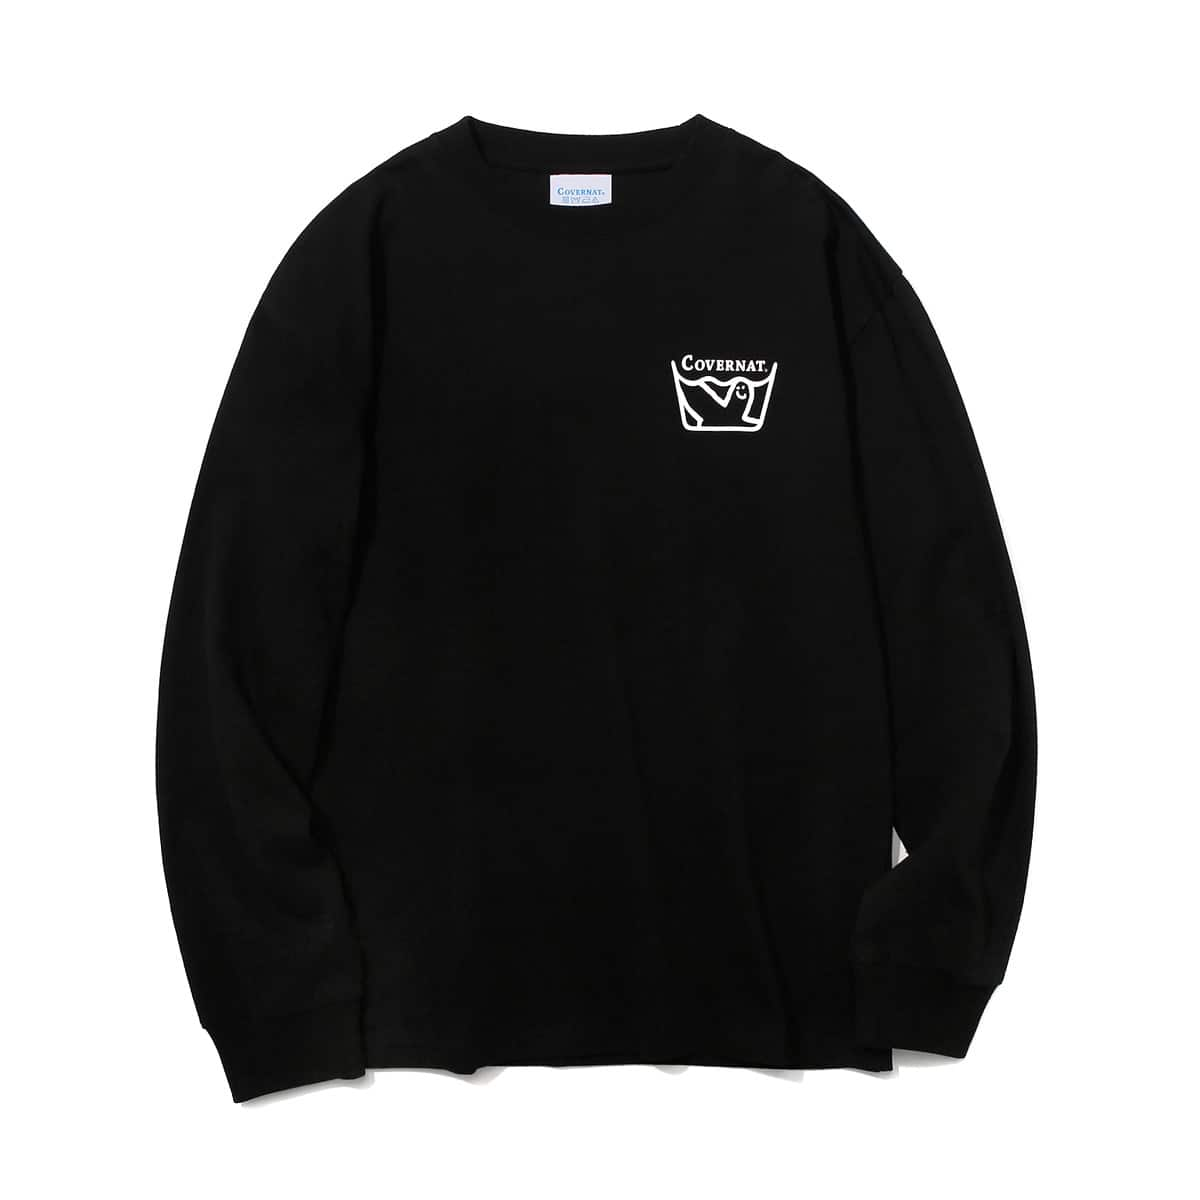 COVERNAT x MARKGONZALES LAUNDRY L/S TEE BLACK 20SP-I_photo_large